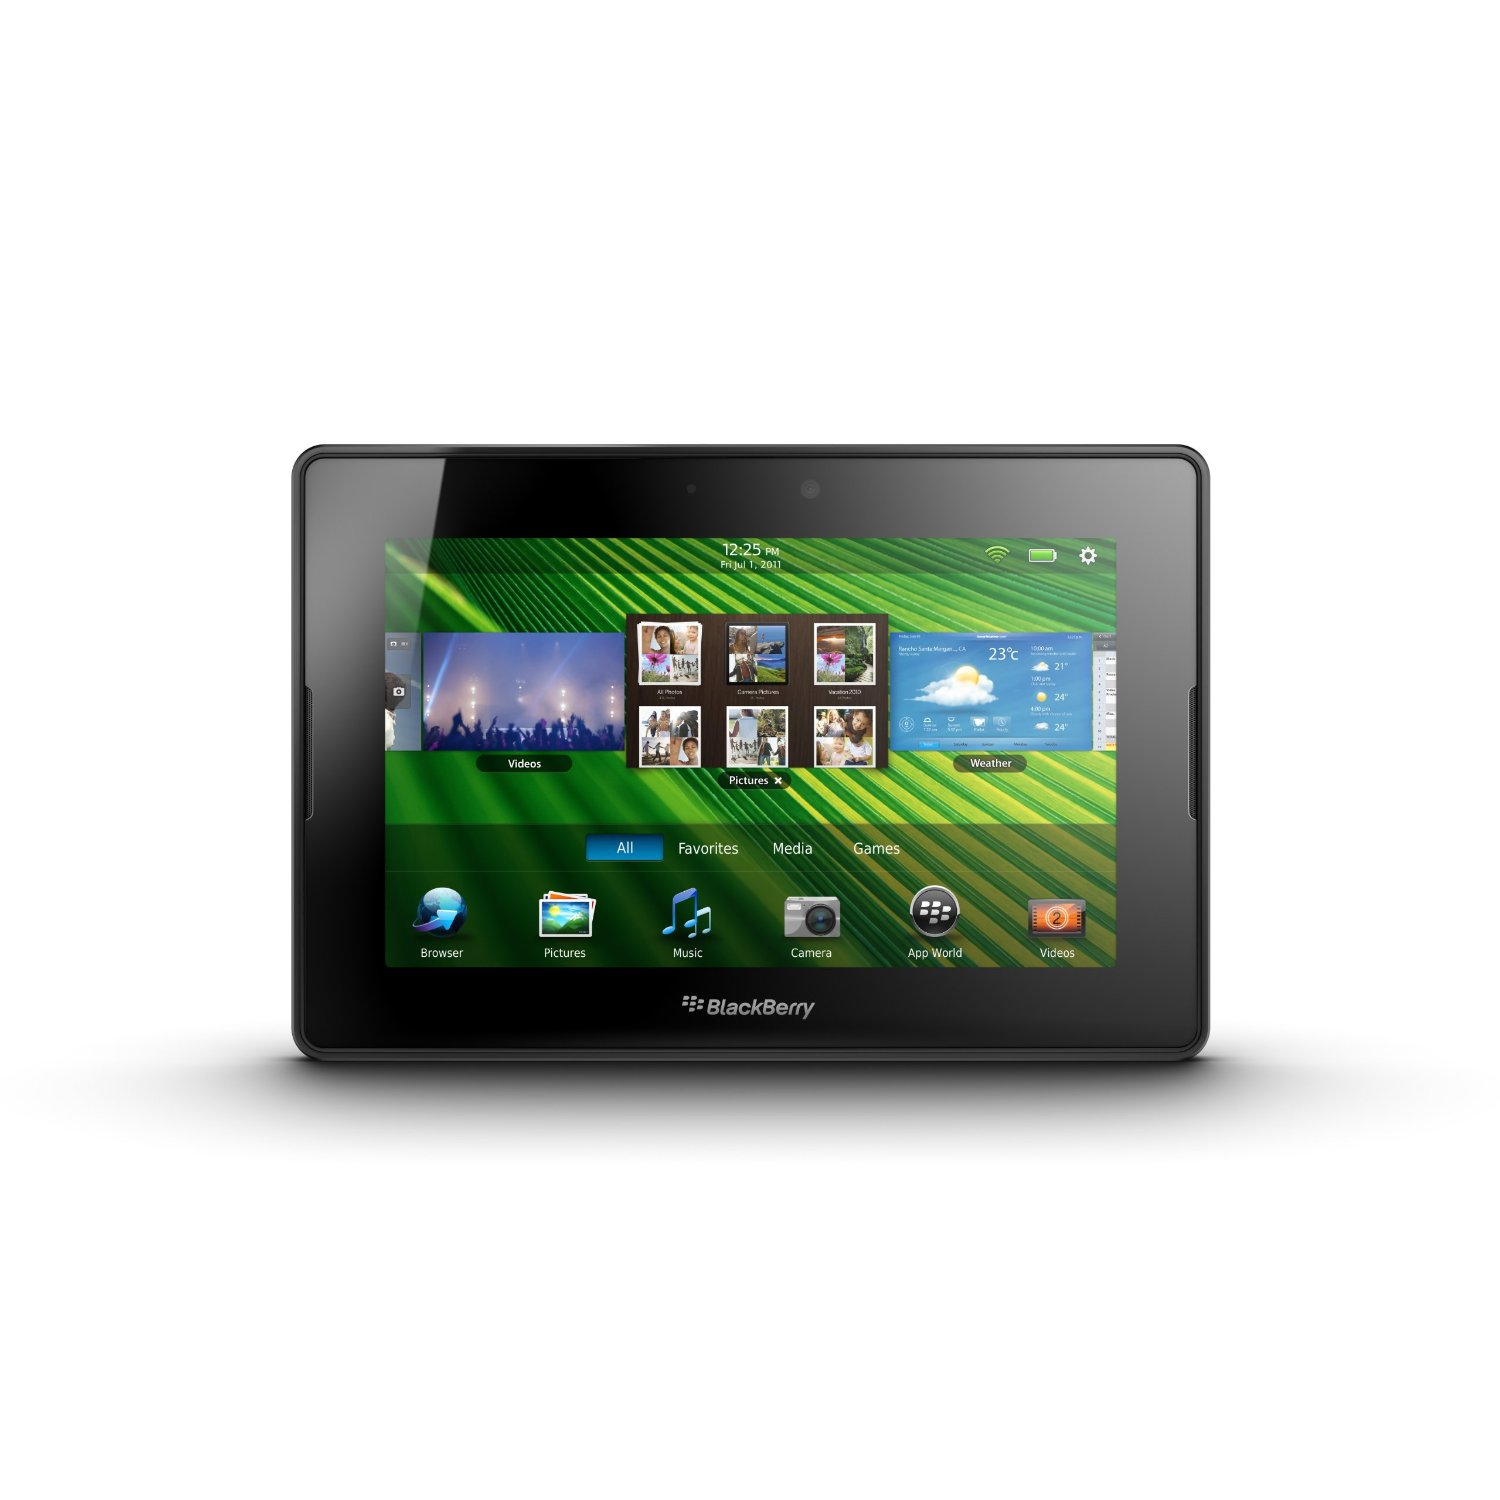 Blackberry Playbook 7-Inch Dual-Core 1GHz Capacitive Touchscreen Tablet (64GB)